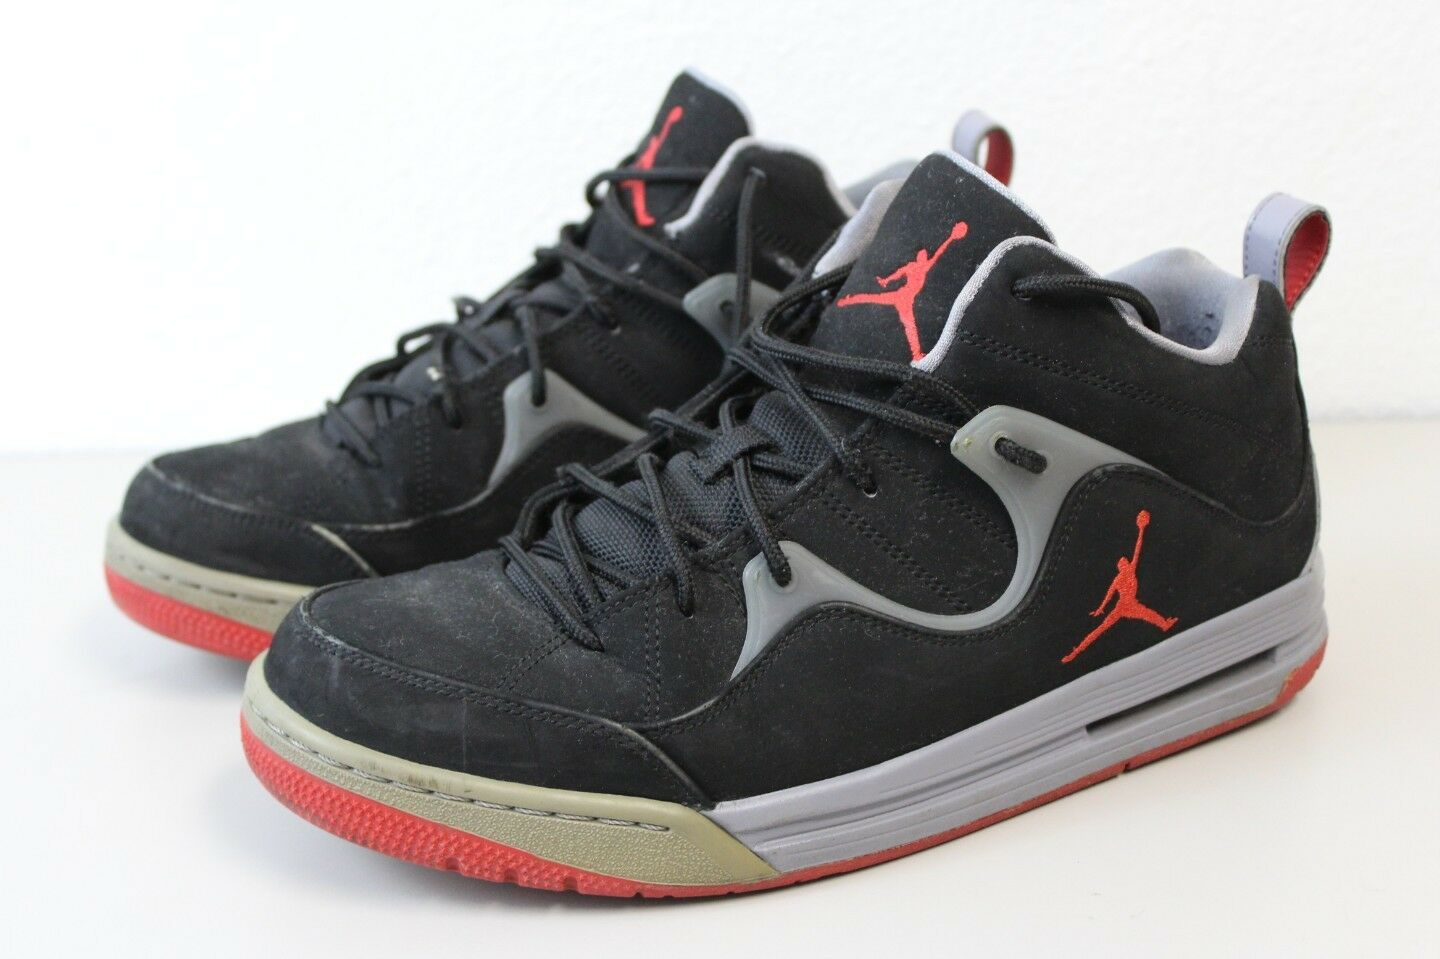 Nike Air Jordan Flight TR '97 Black Fire Red Cement Gray Comfortable New shoes for men and women, limited time discount